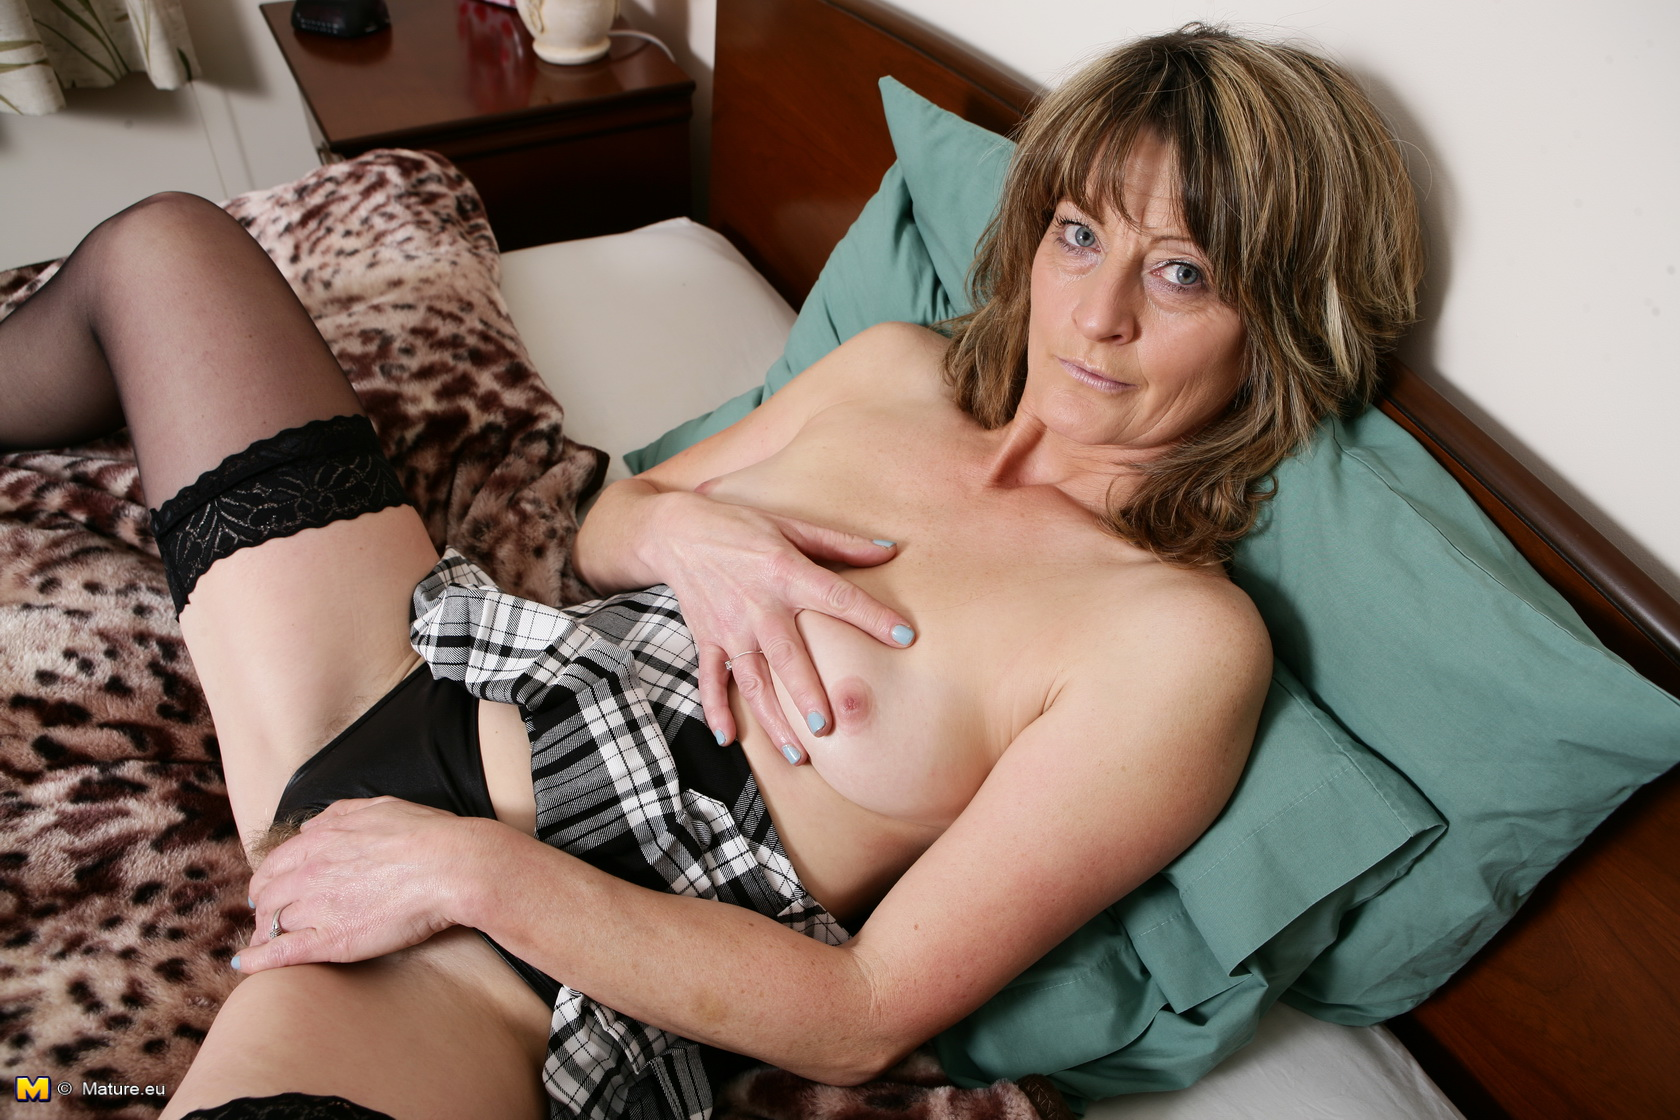 Love theses british milf xxx galleries hot